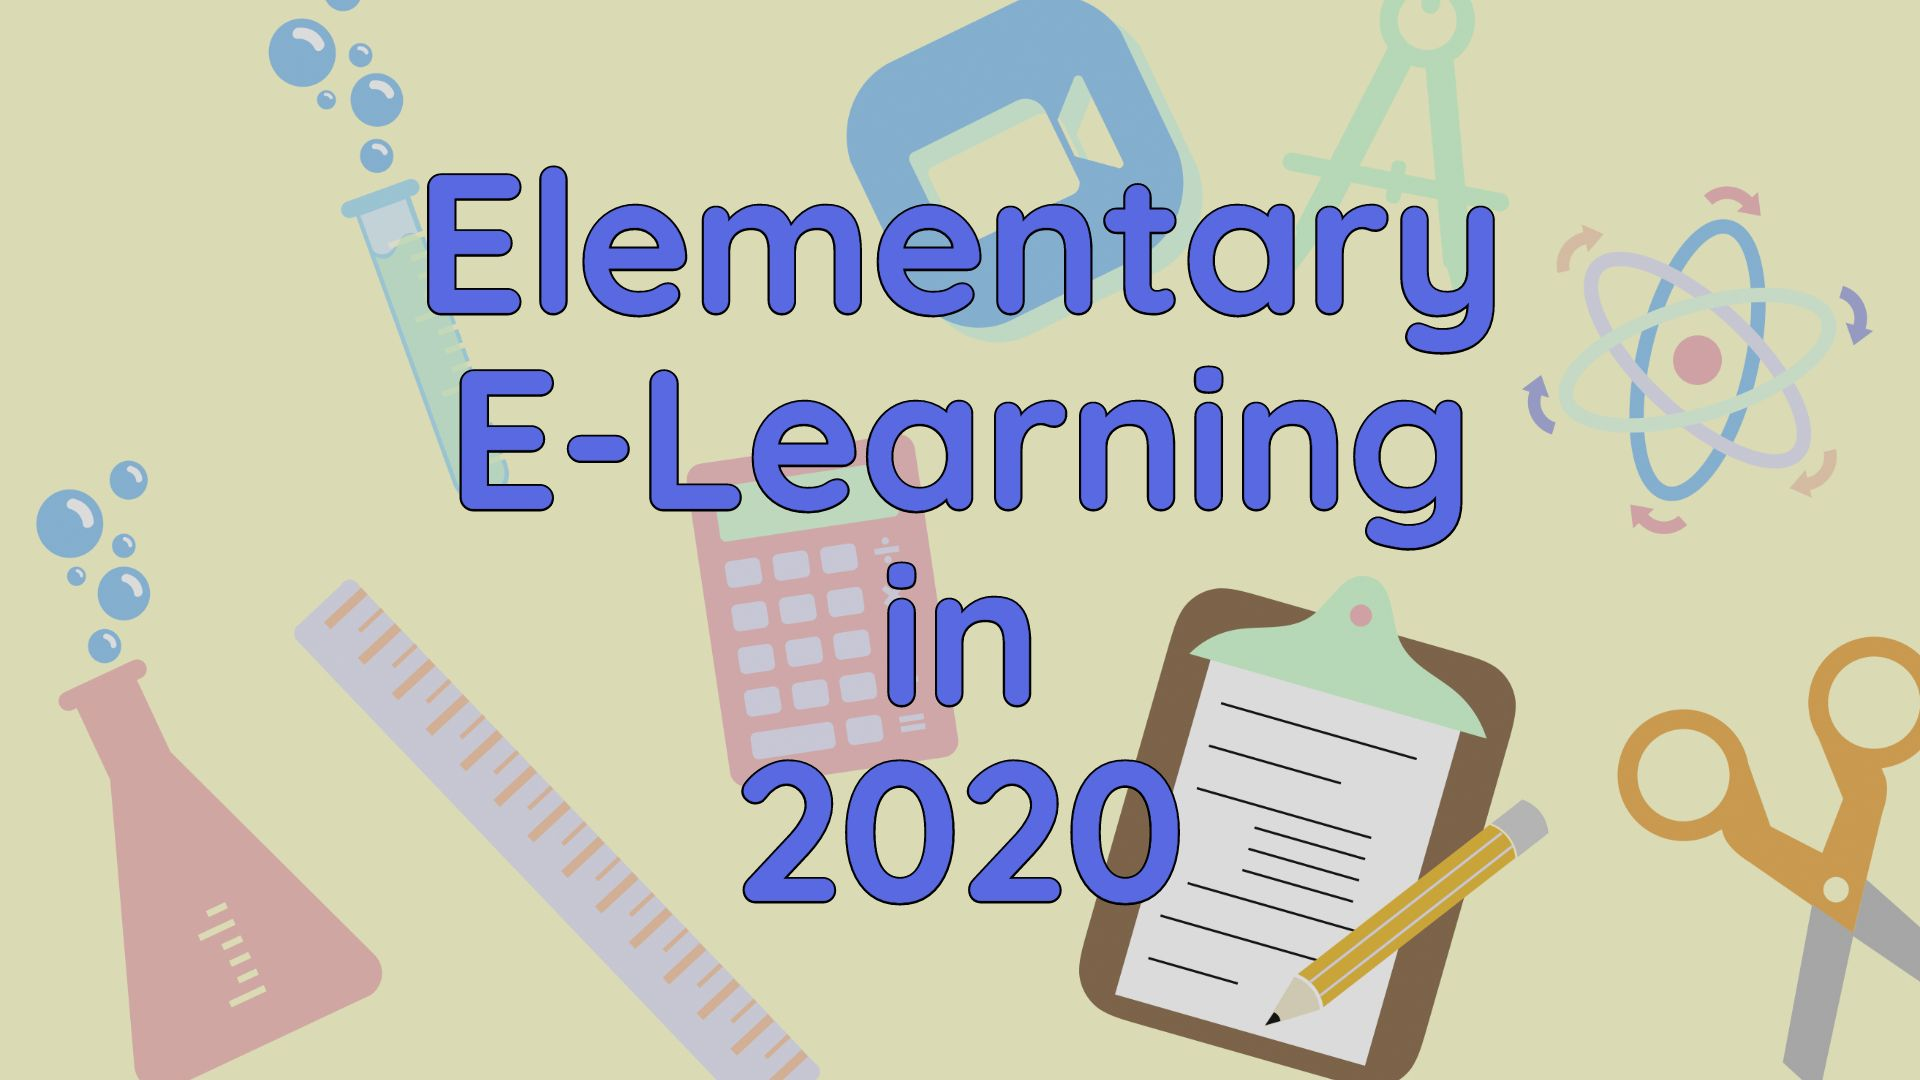 5 Tips For Elementary Teachers In 2020 Remote Learning E Learning And Sel